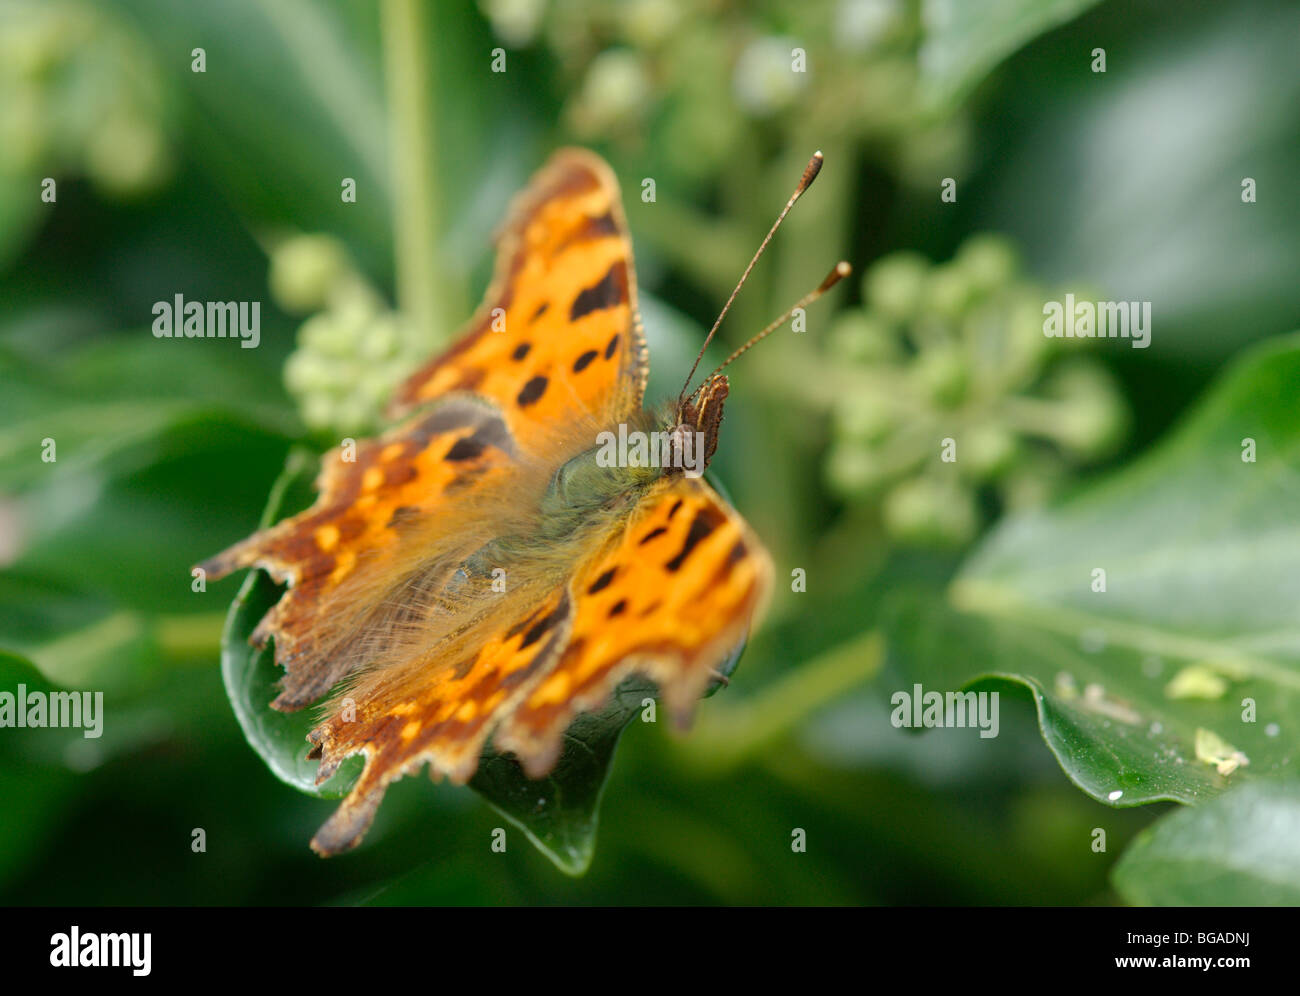 Comma butterfly (Polygonia c-album). Side view. - Stock Image